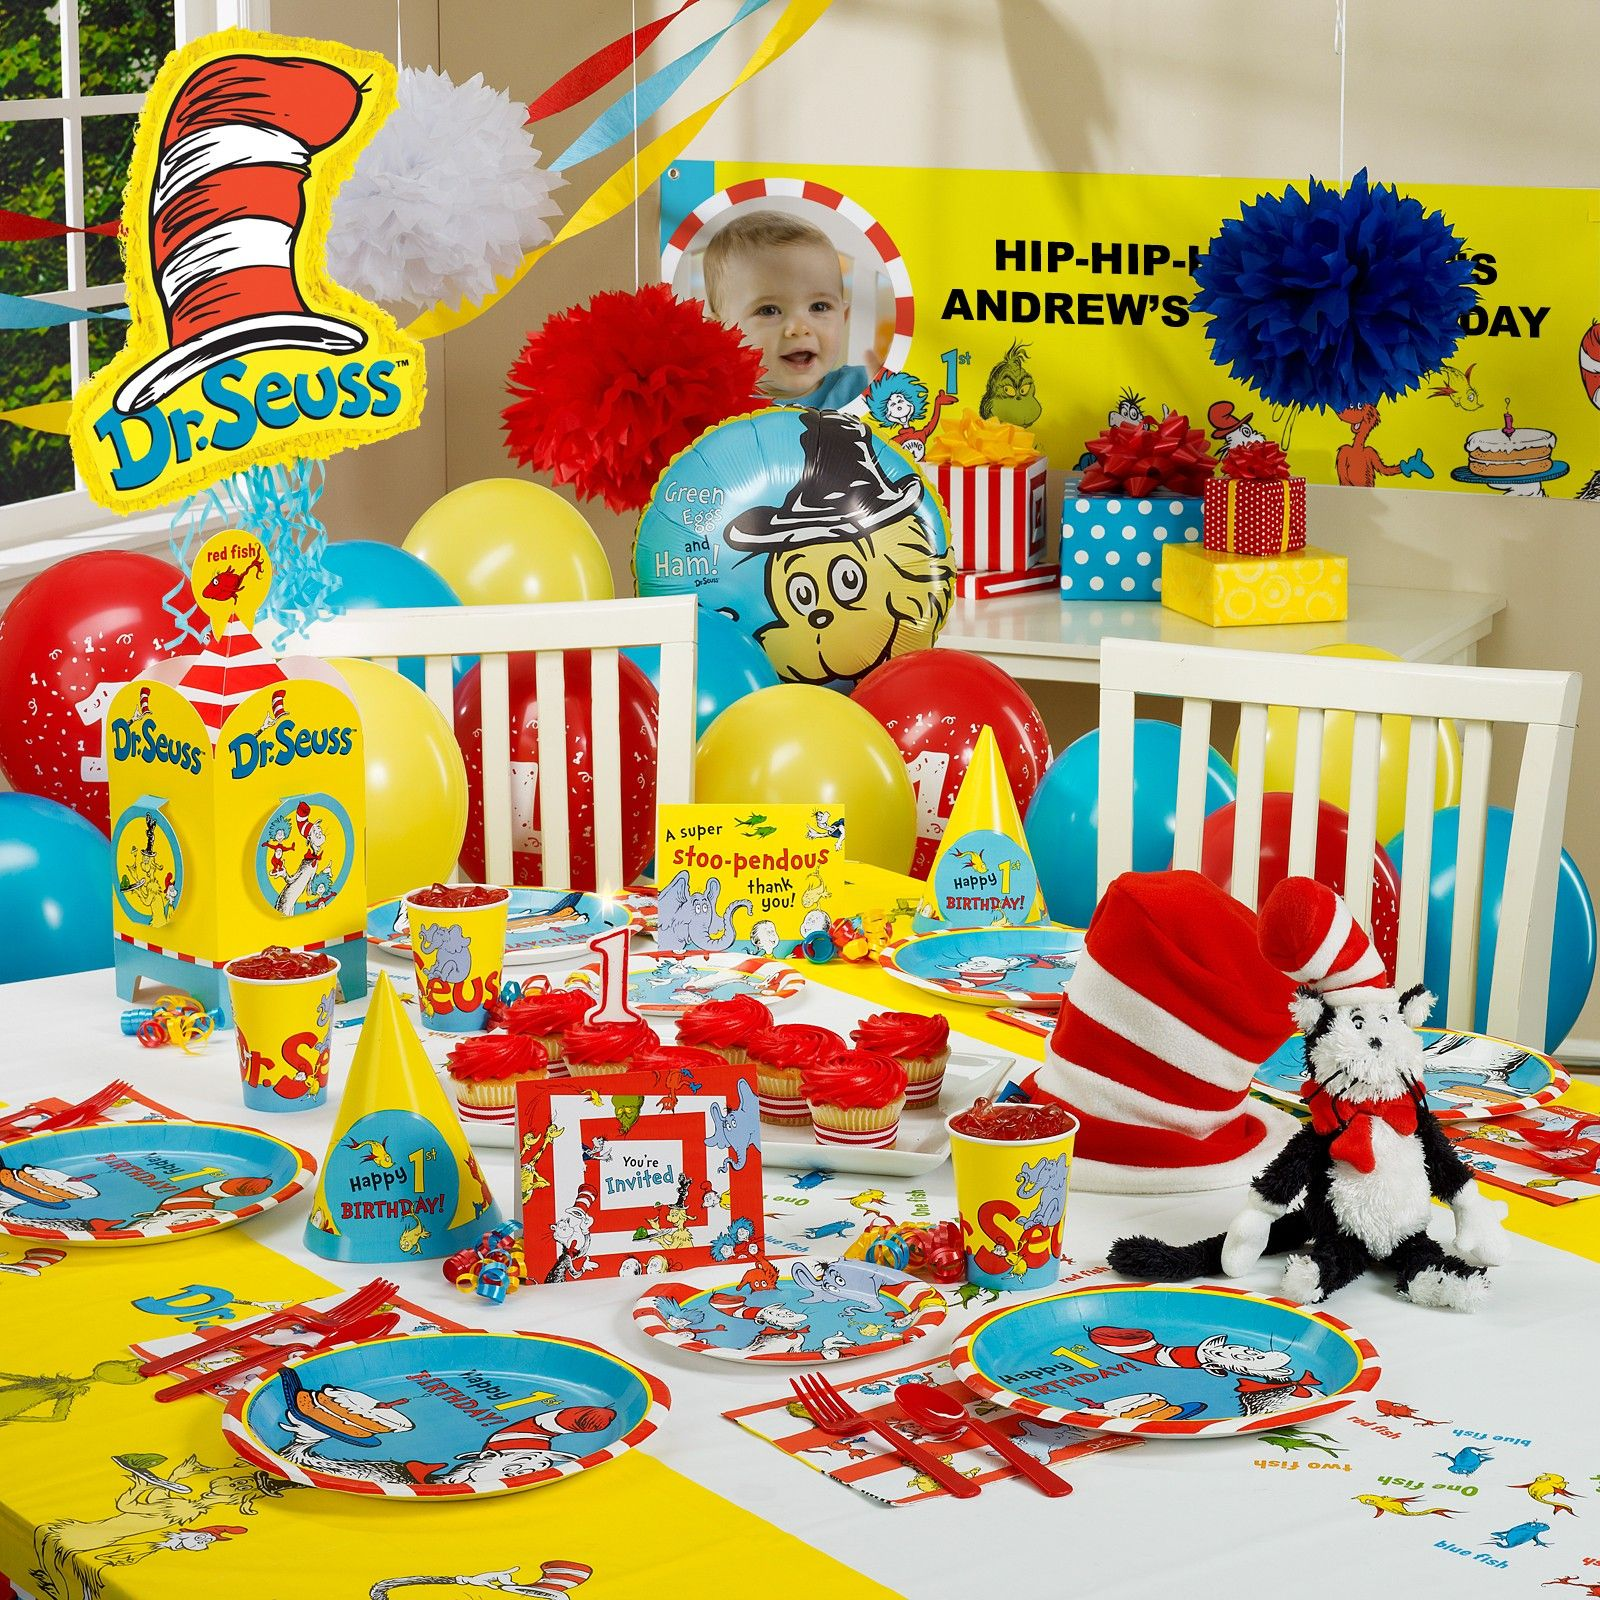 Dr Seuss 1st Birthday Ultimate Party Pack For 16 Birthday Party Packs Dr Seuss Birthday Party 1st Birthday Parties